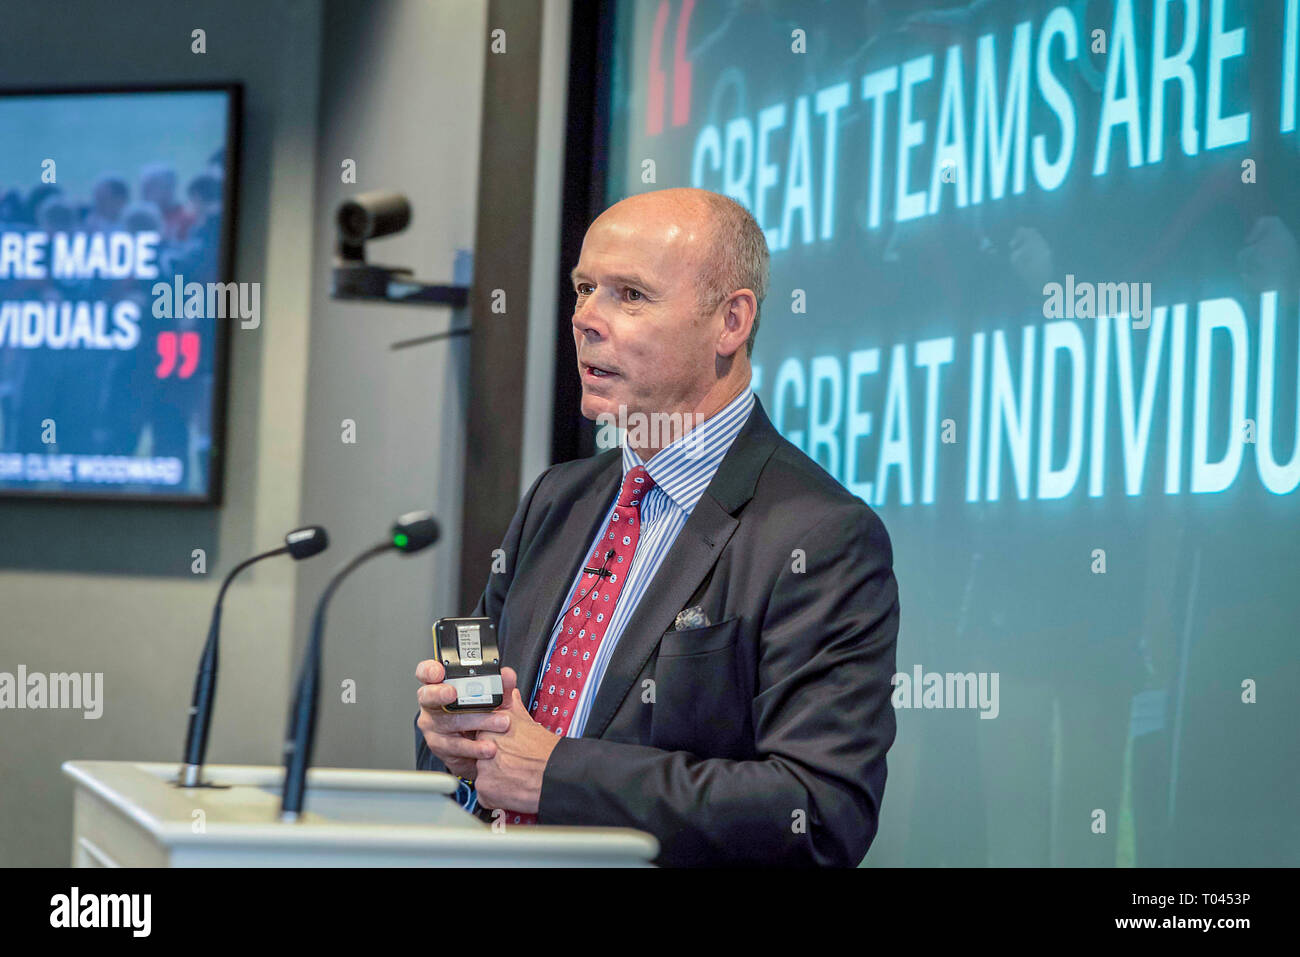 Sir Clive Woodward motivational talk. - Stock Image